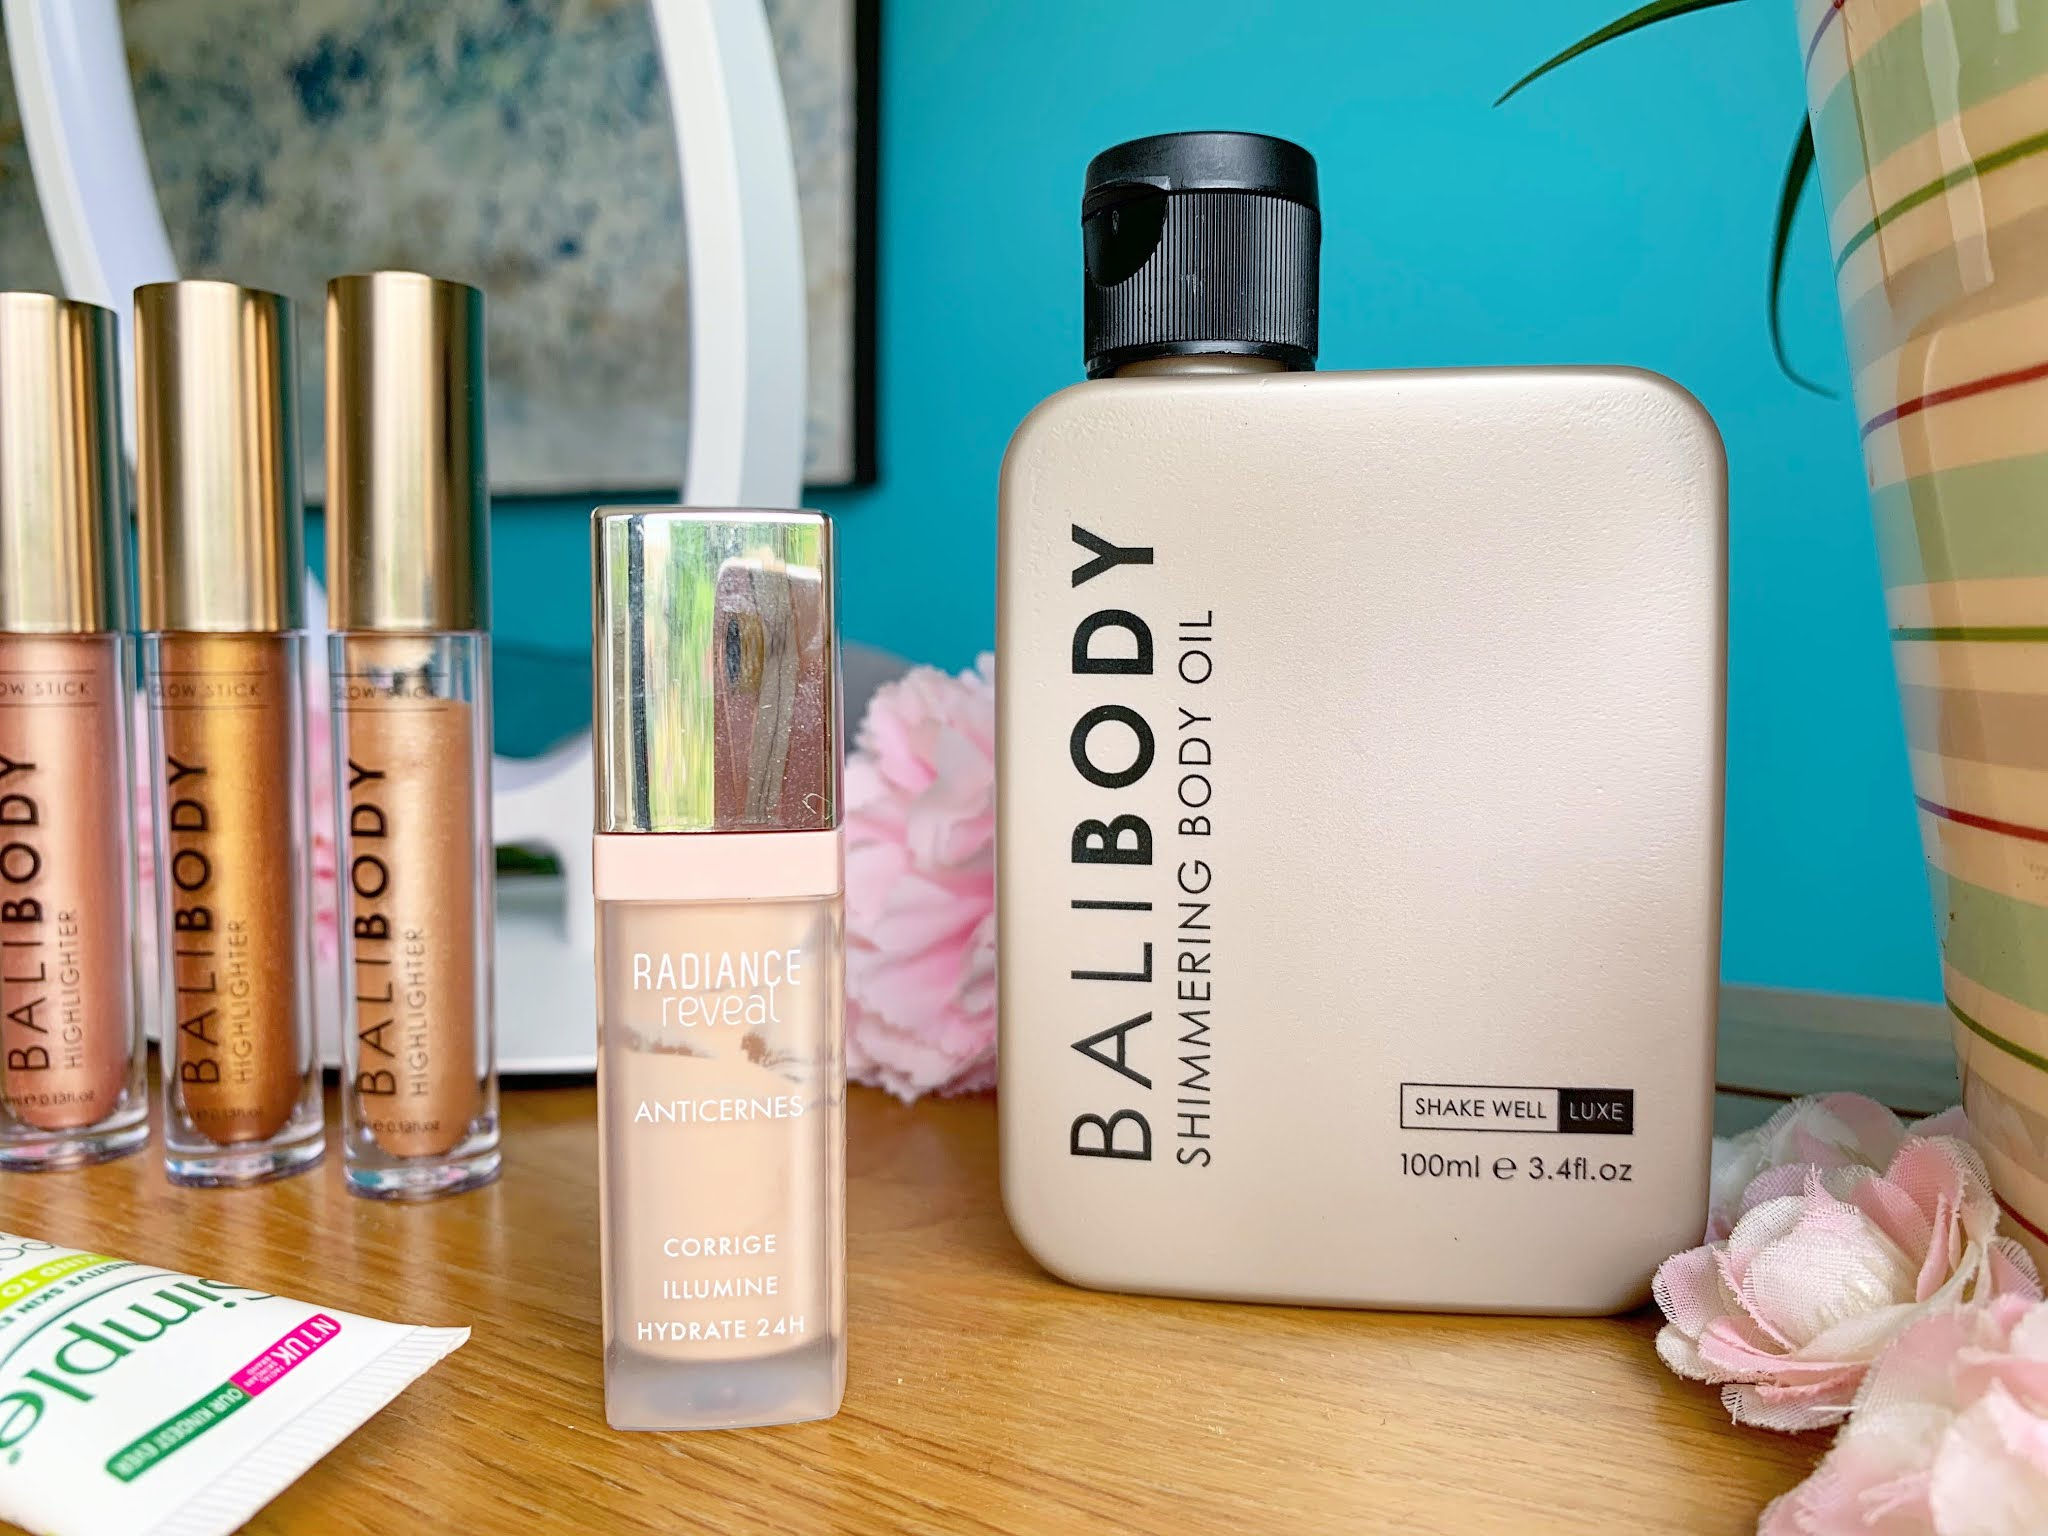 Bali Body Shimmering Body Oil and Bourjois Radiance Concealer on a side table with a blue background